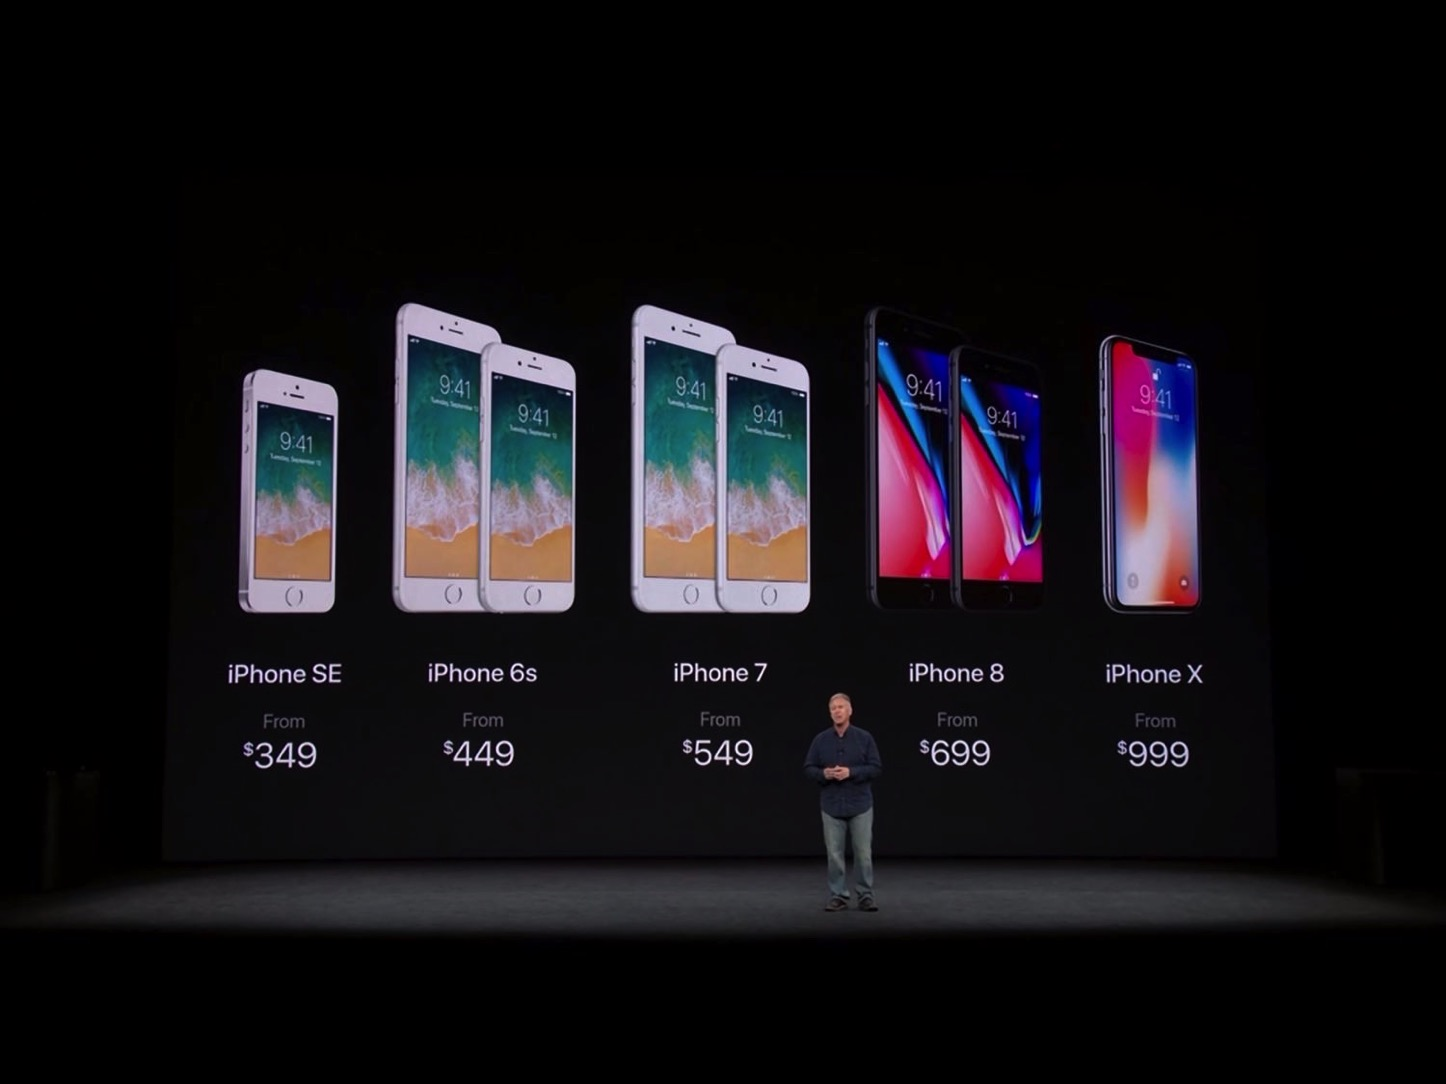 Iphone x pricing 01